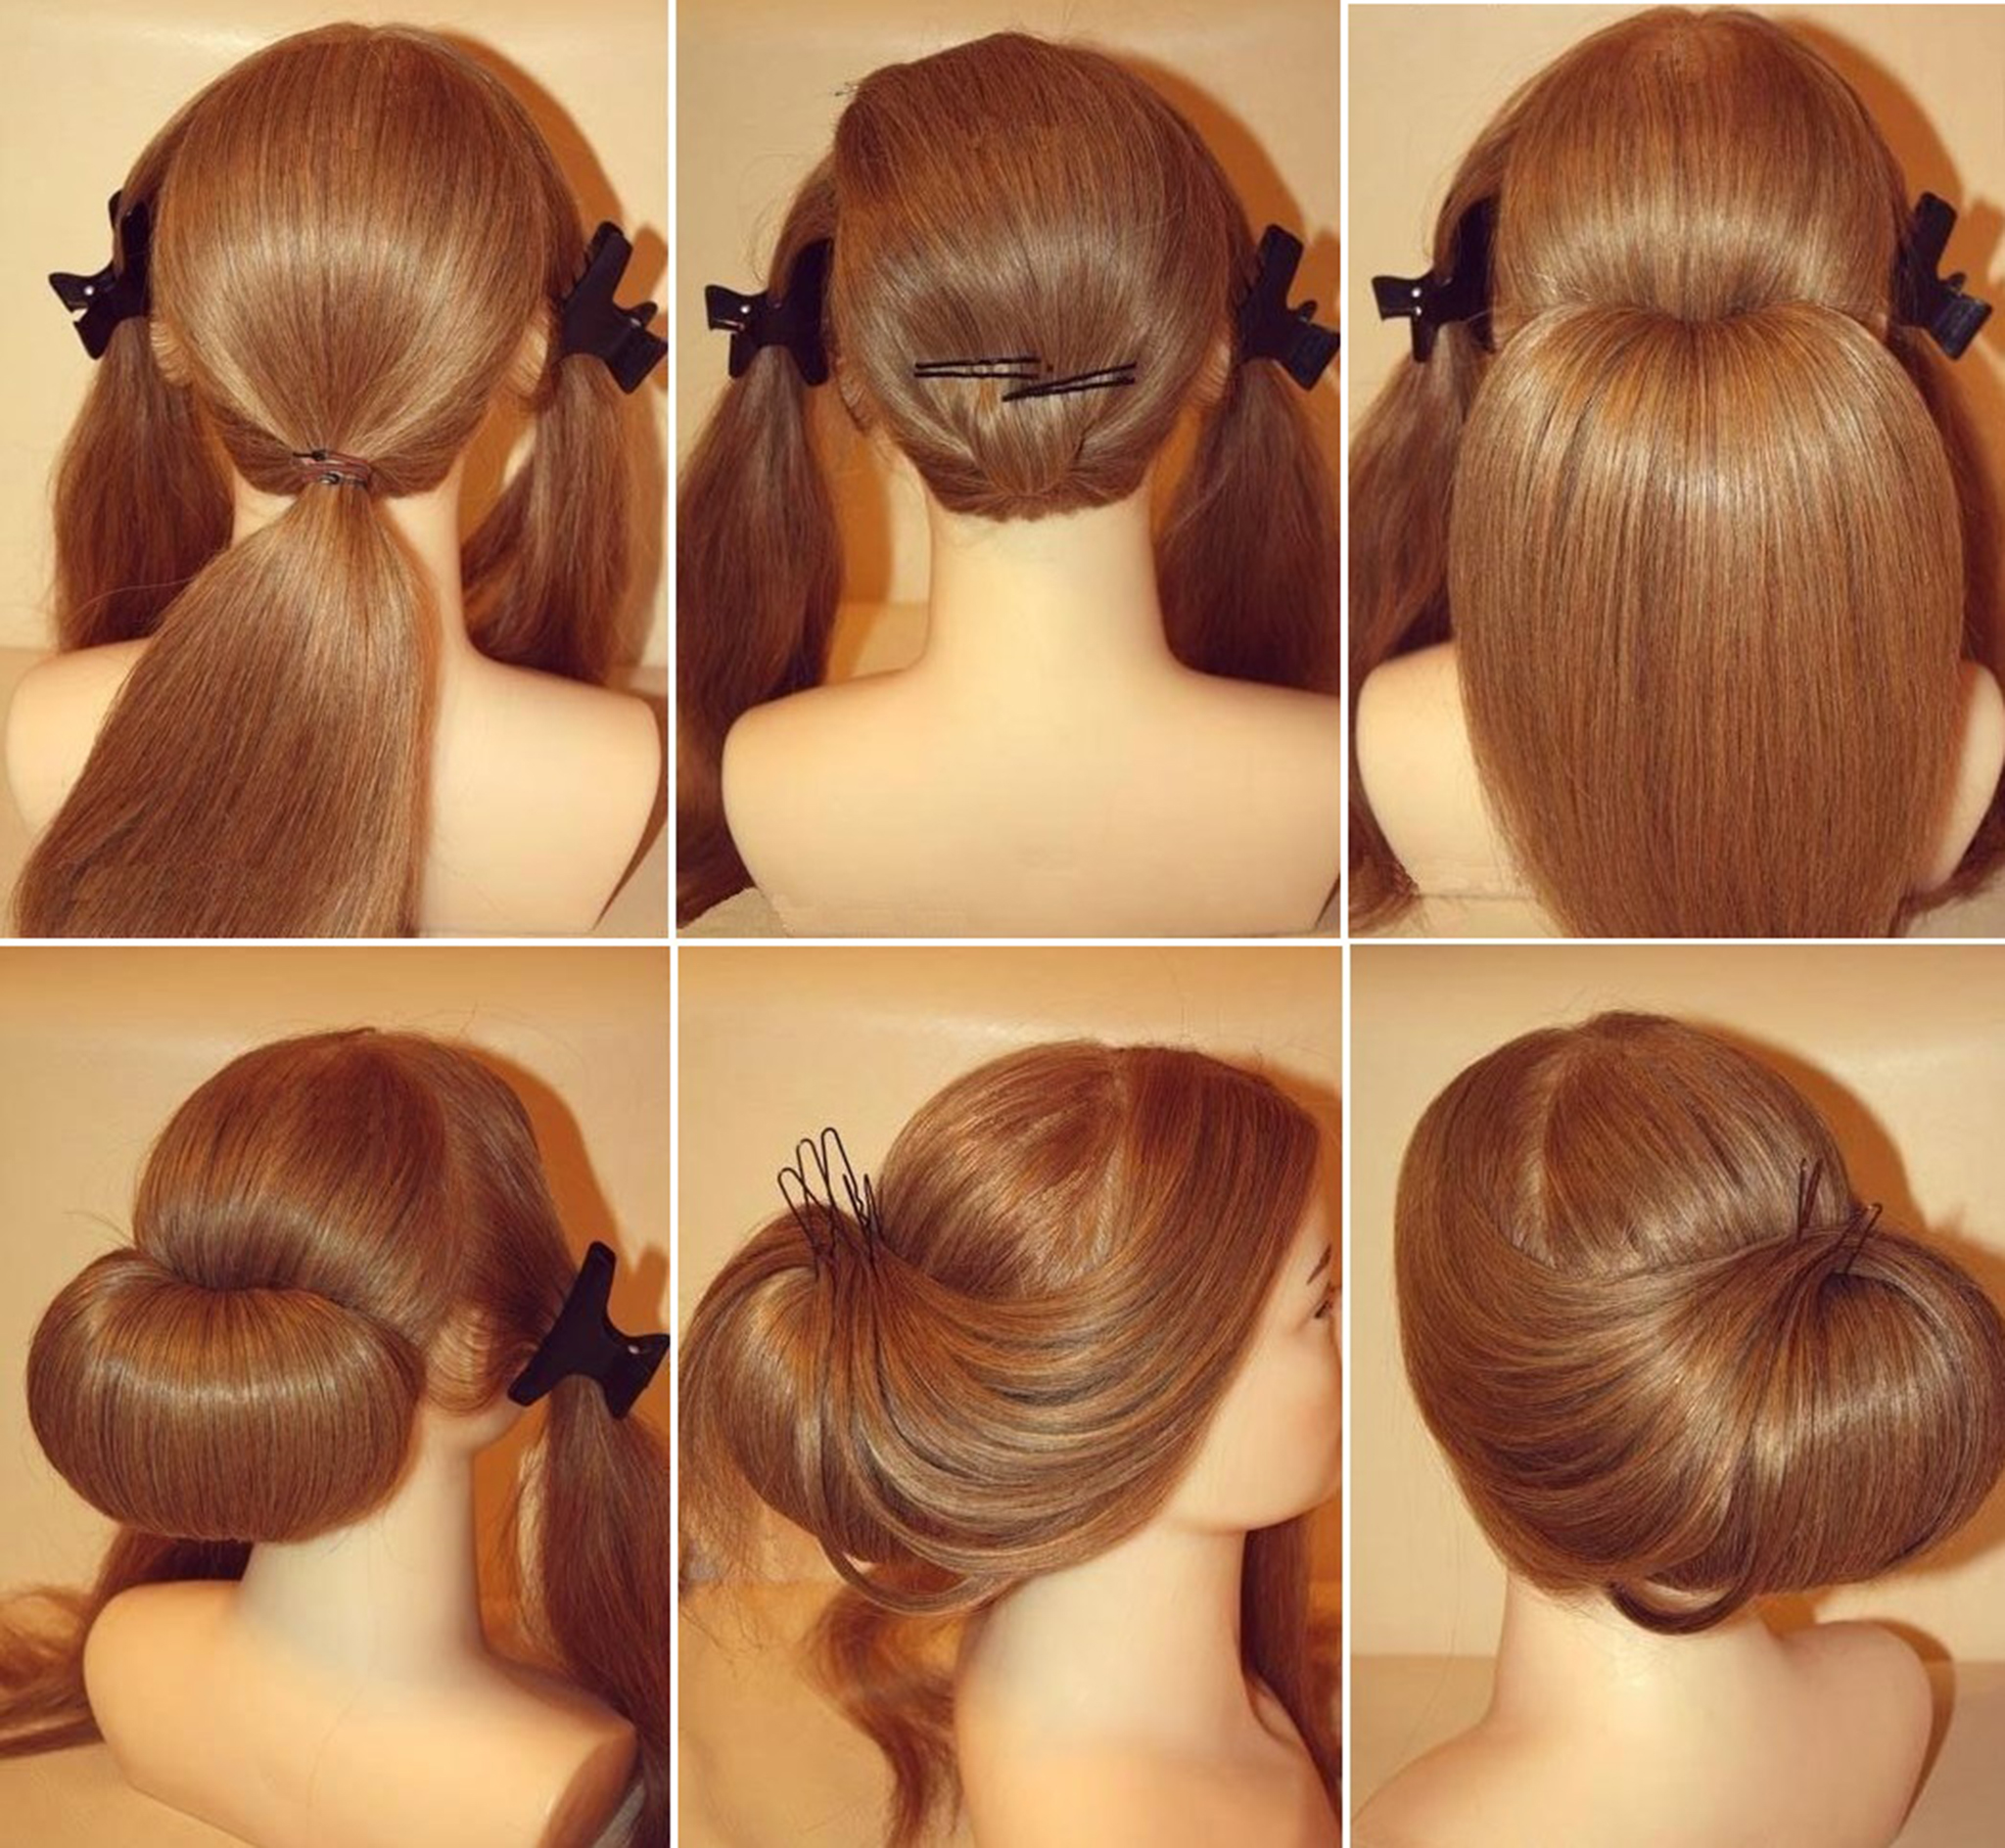 hair styling step by step 12 most beautiful hairstyles you will easy step by 6985